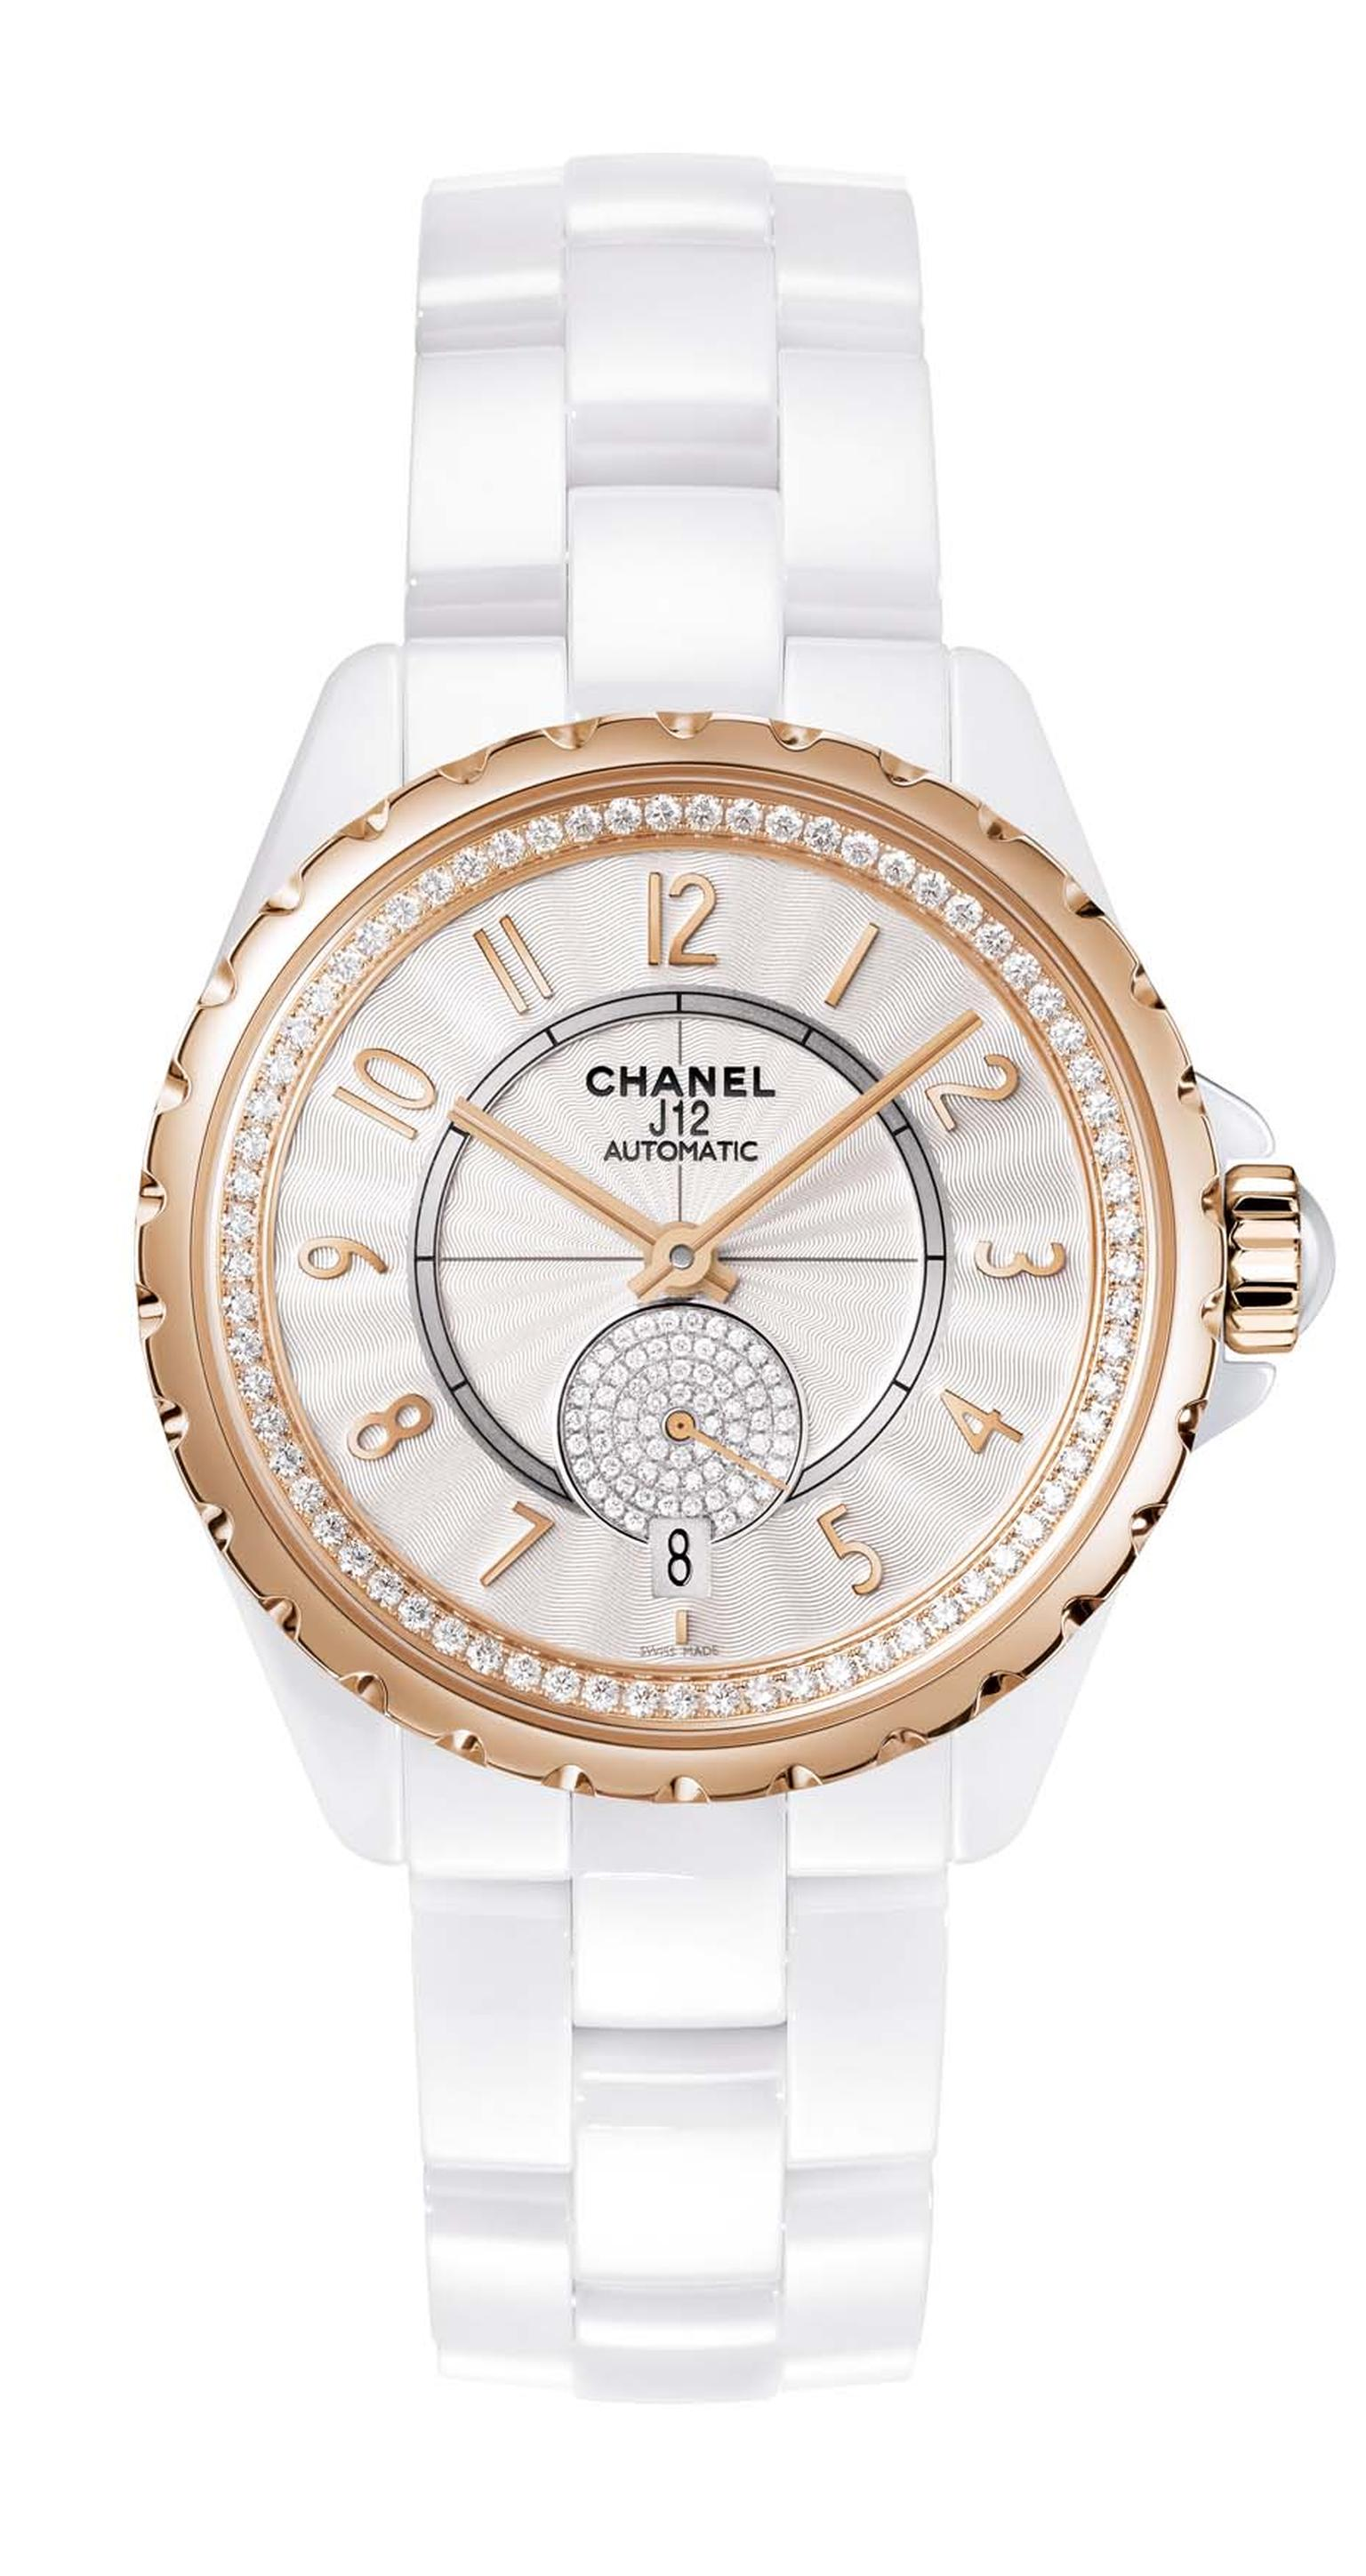 Chanel J12-365 white high-tech ceramic watch featuring beige gold, an alloy exclusive to Chanel as well as a Guilloche´-finished white dial and diamonds within the inner bezel and small seconds.